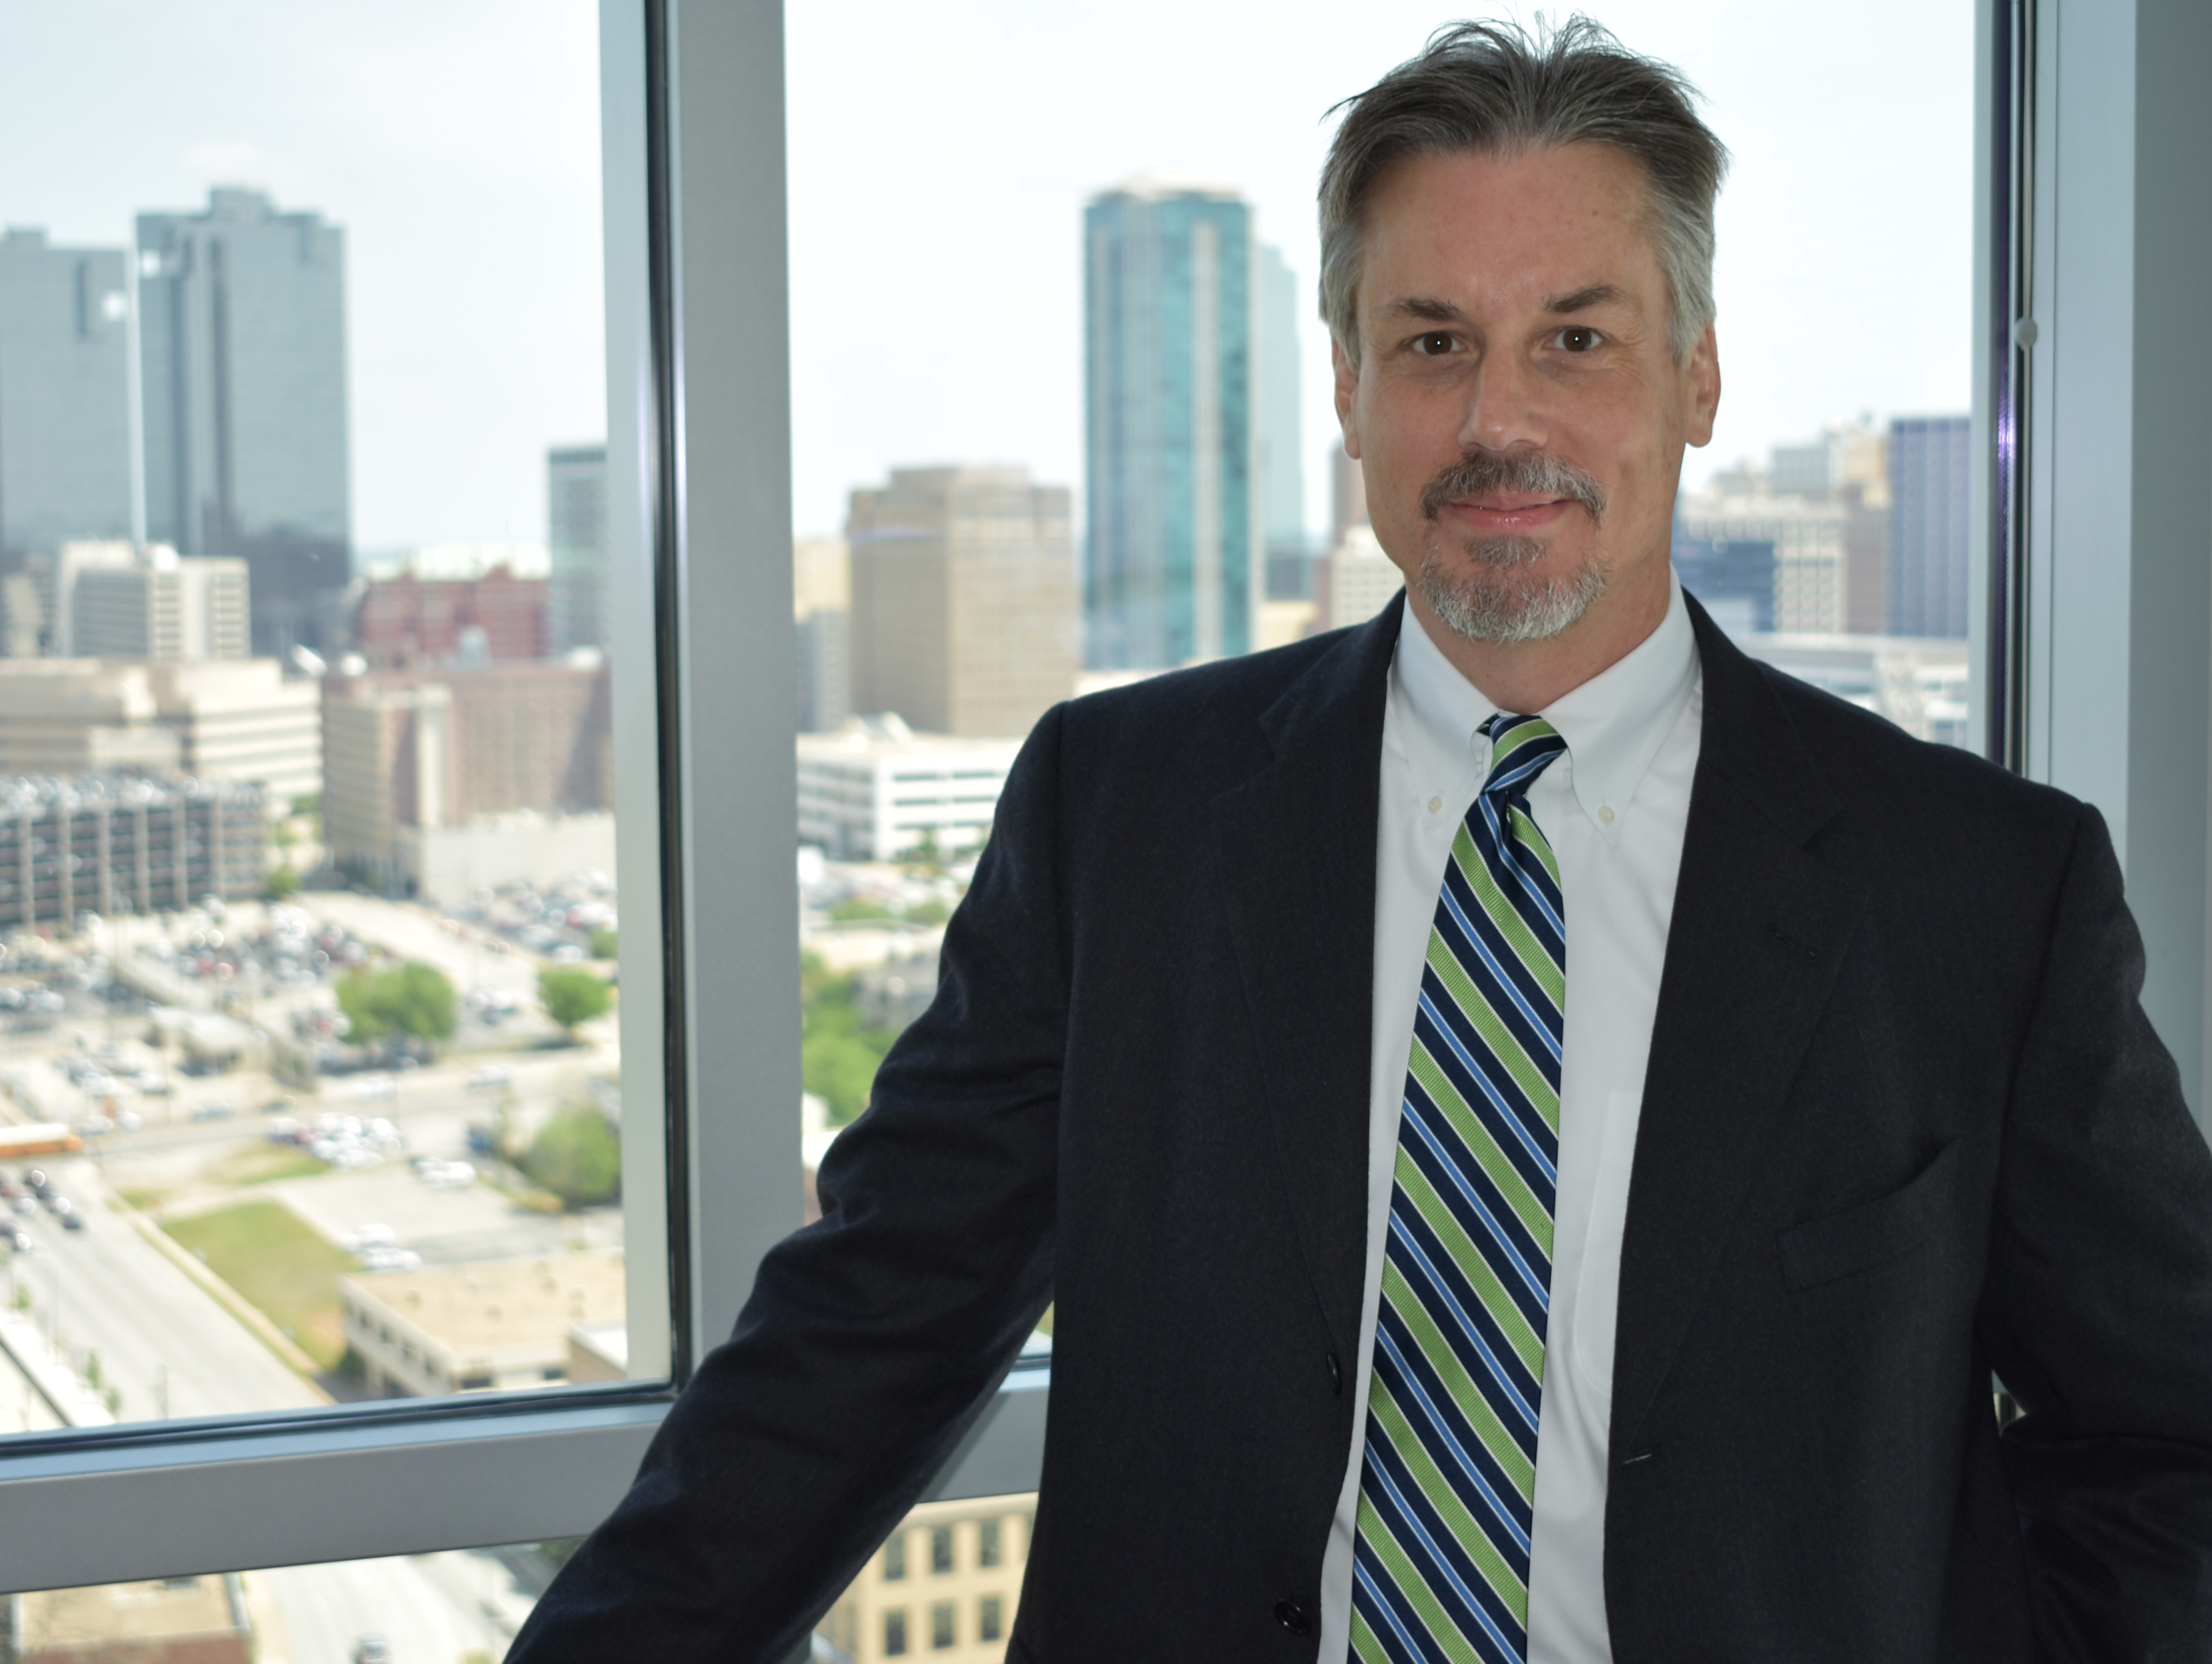 steven j gordon - Premises & Products Liability | Practice Area | DFW | TX